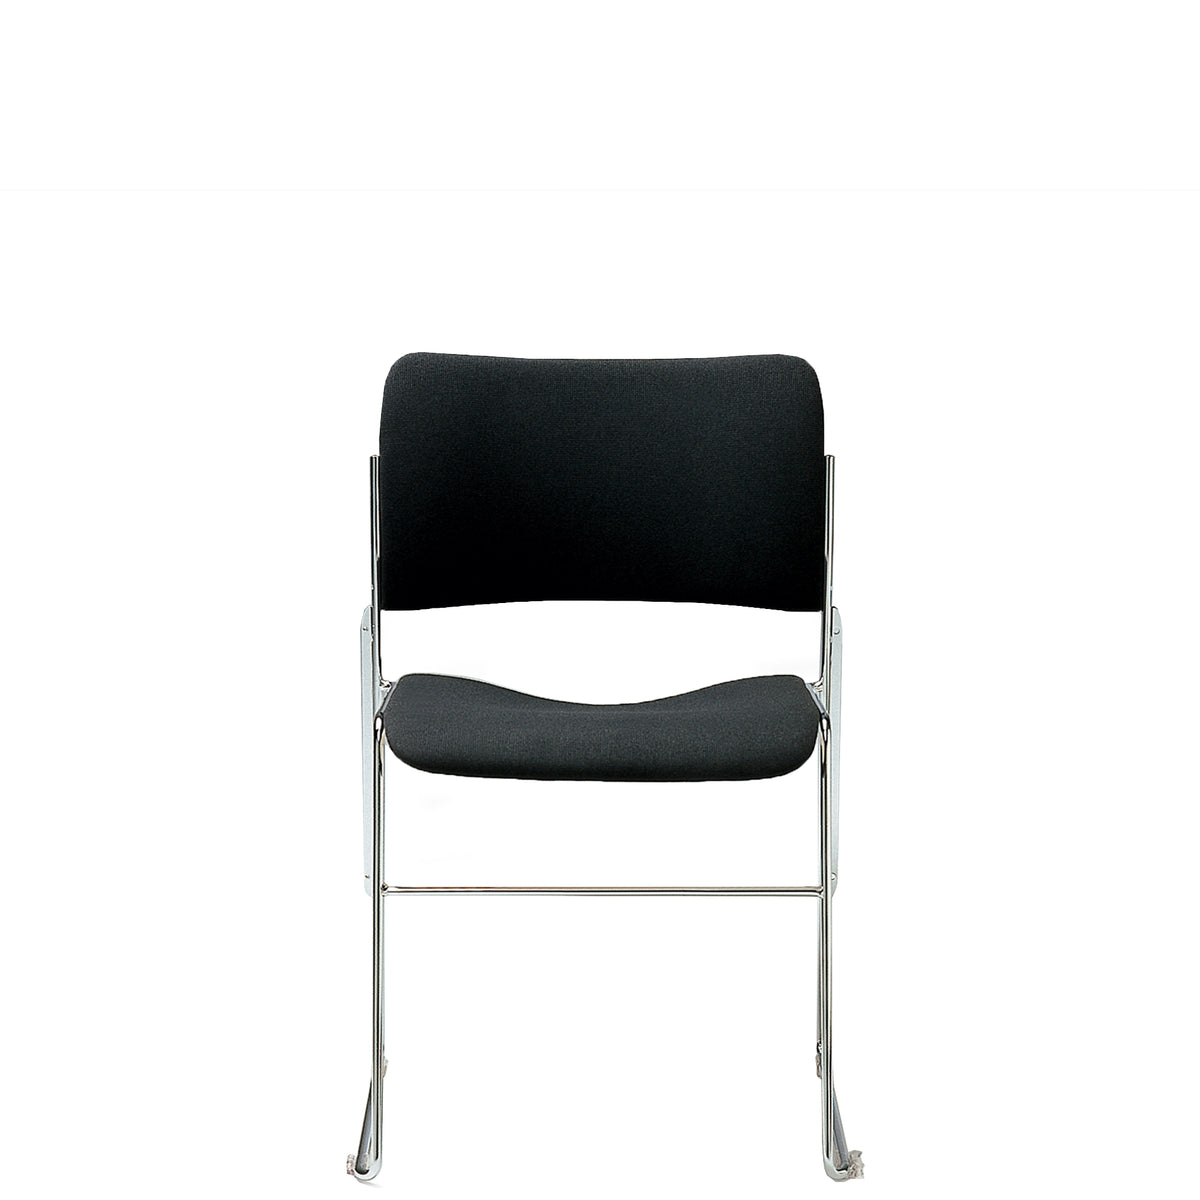 HOWE 40/4 Fully Upholstered Black Side Chair with Chrome Base by David Rowland